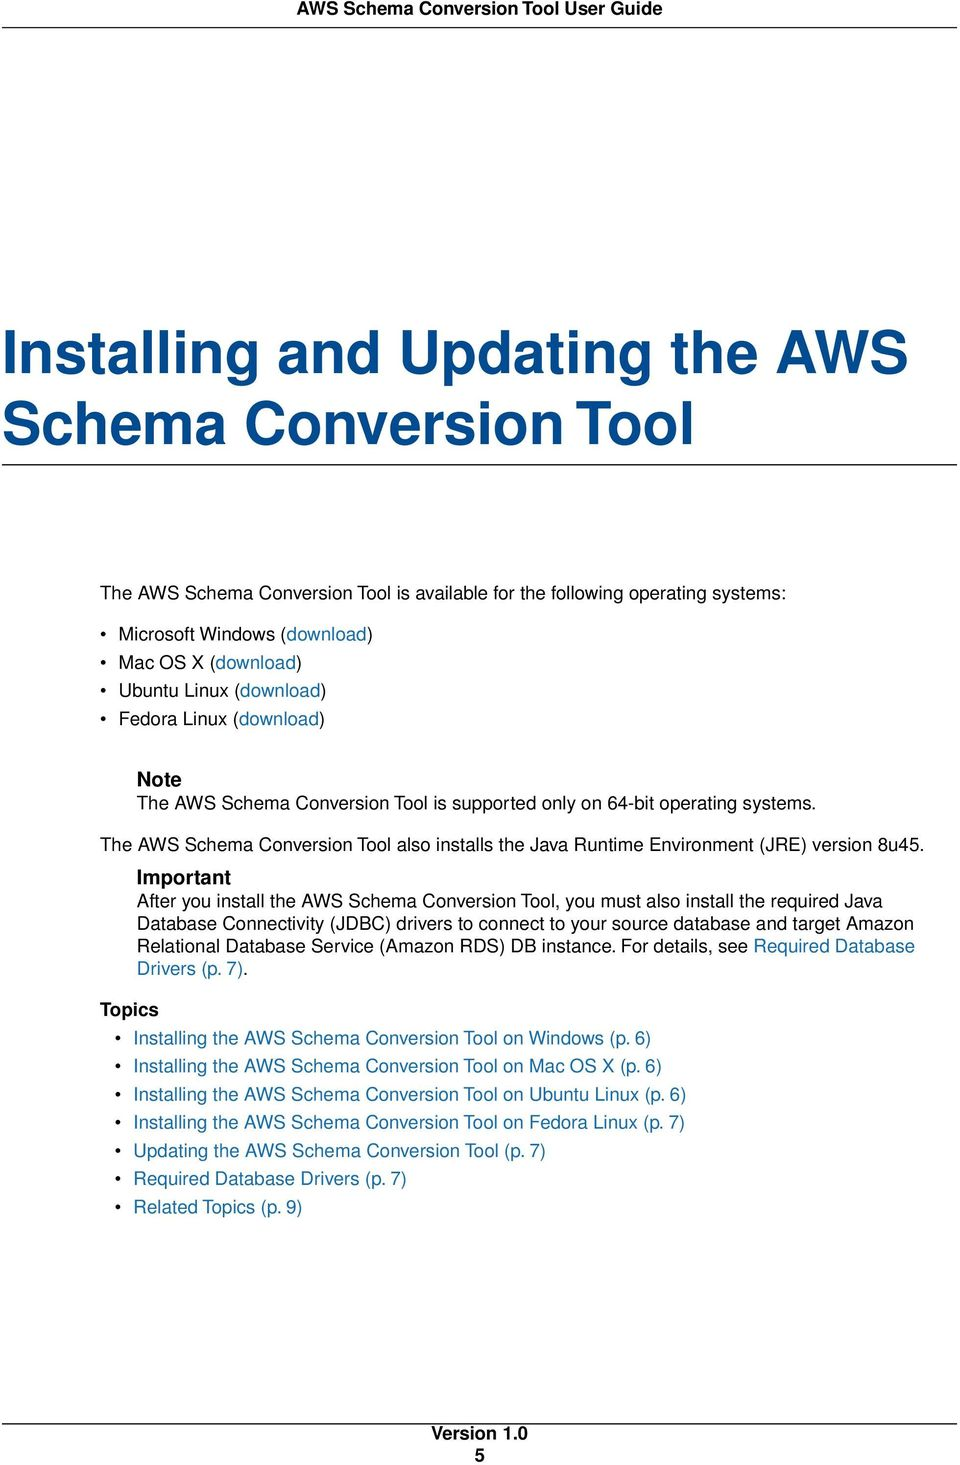 The AWS Schema Conversion Tool also installs the Java Runtime Environment (JRE) version 8u45.